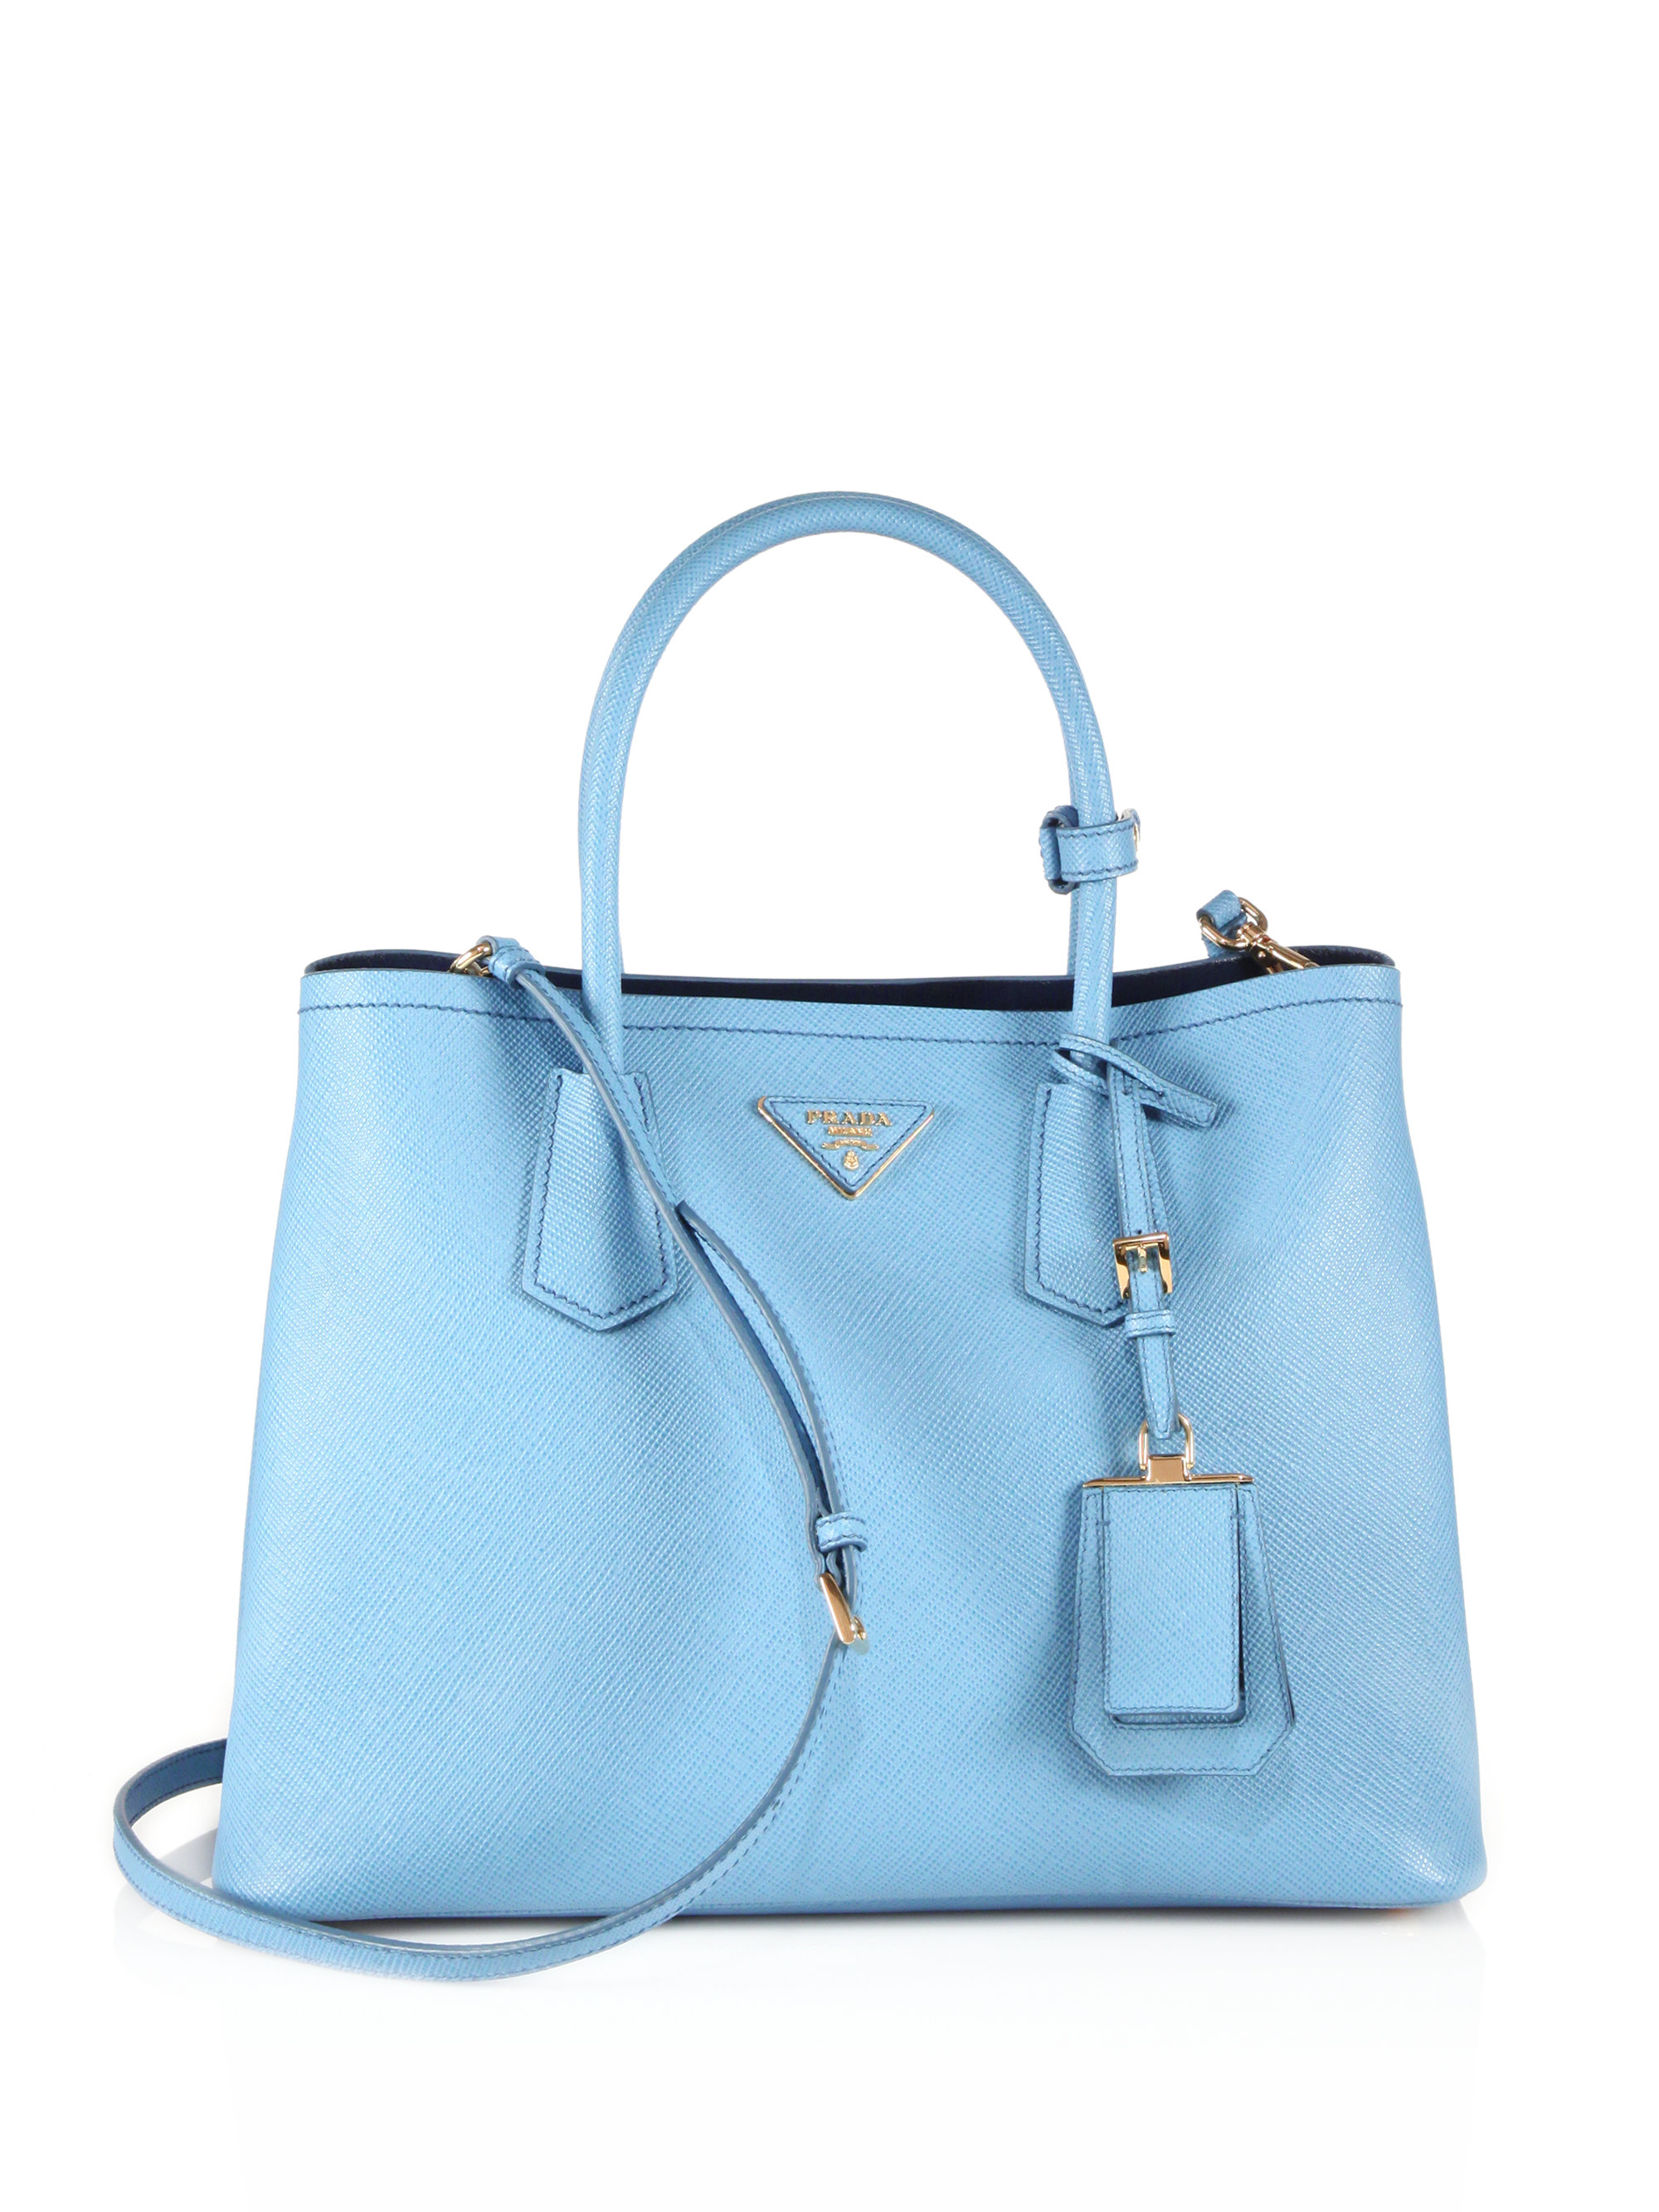 prada saffiano cuir twin bag tote blue handbag